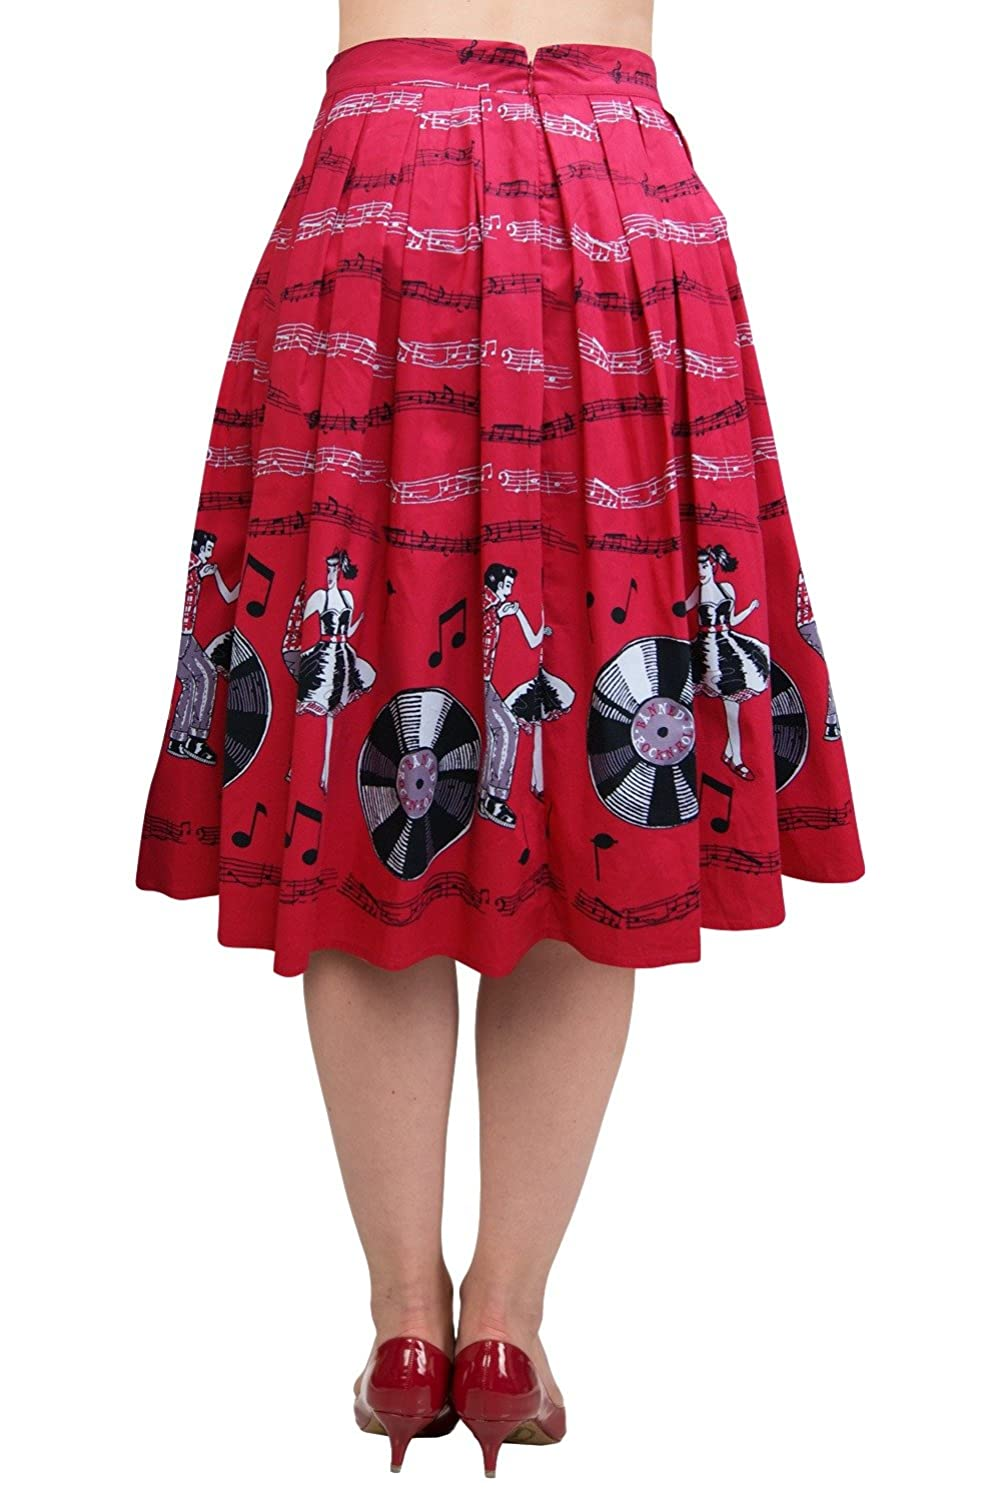 1950s Skirts for Sale: Poodle, Pencil, and Circle Skirts Banned Empower 50s Retro Skirt $44.99 AT vintagedancer.com